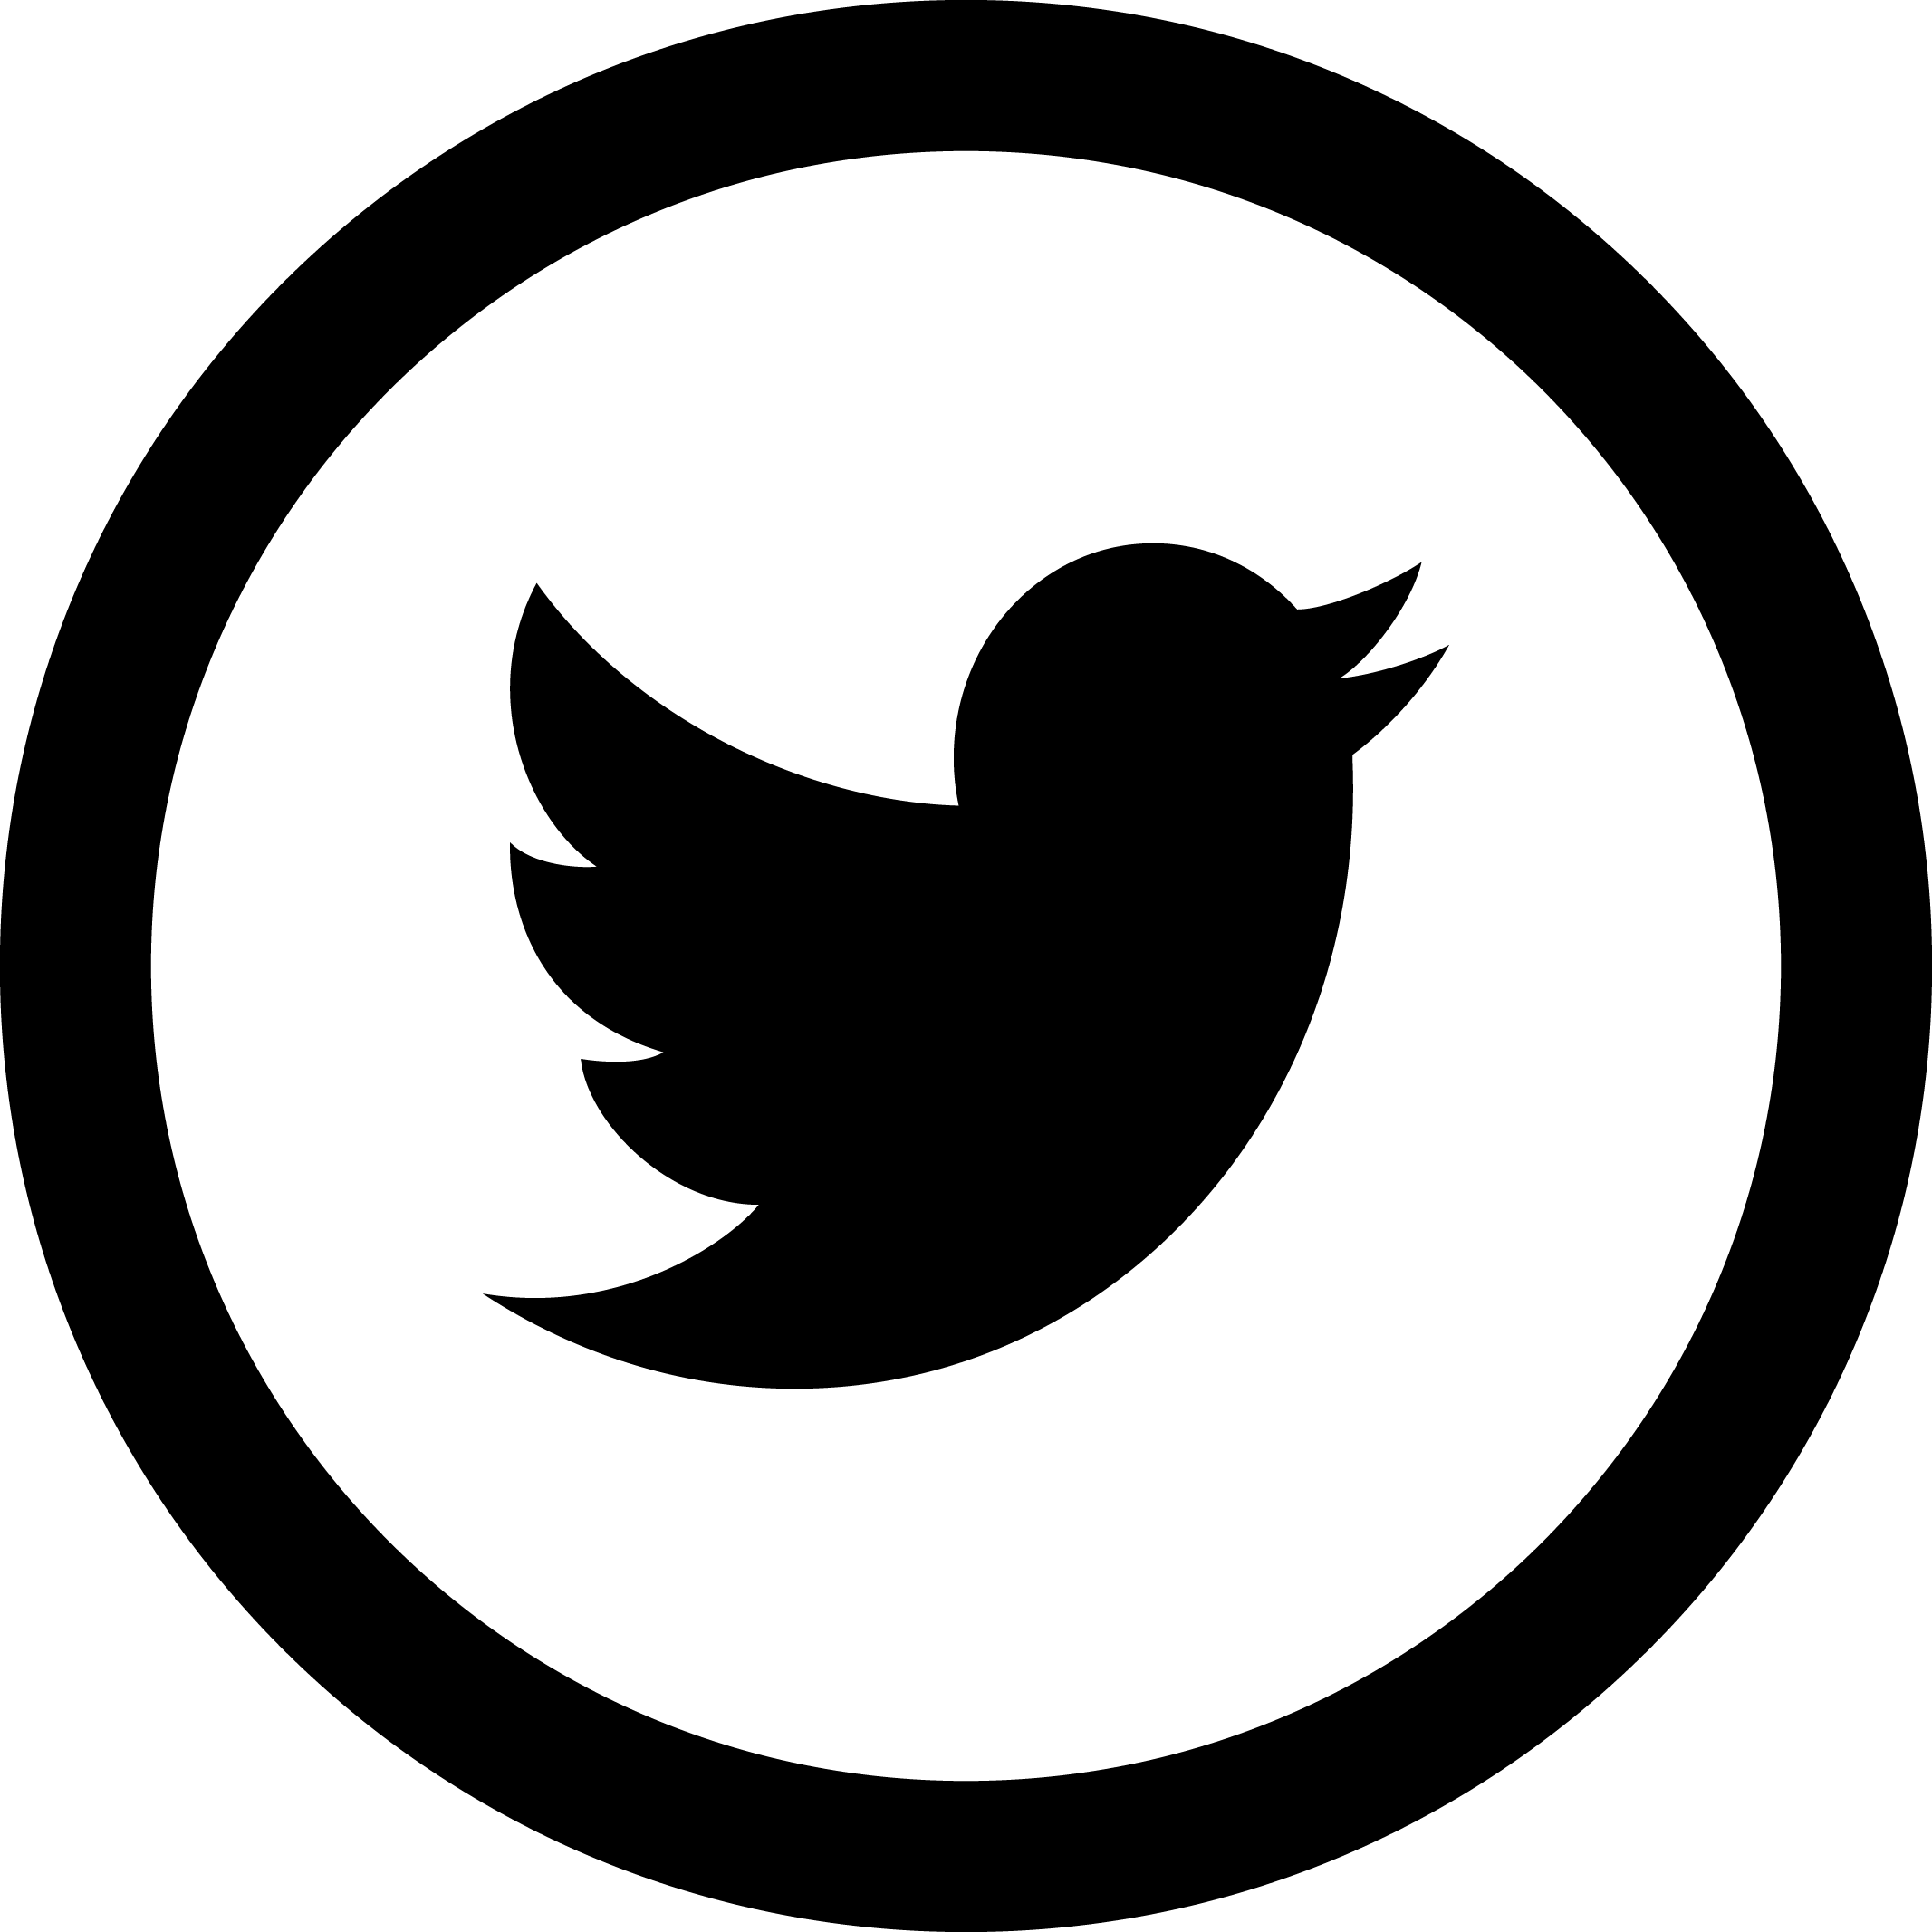 Twitter icon png. Simple logo in circle